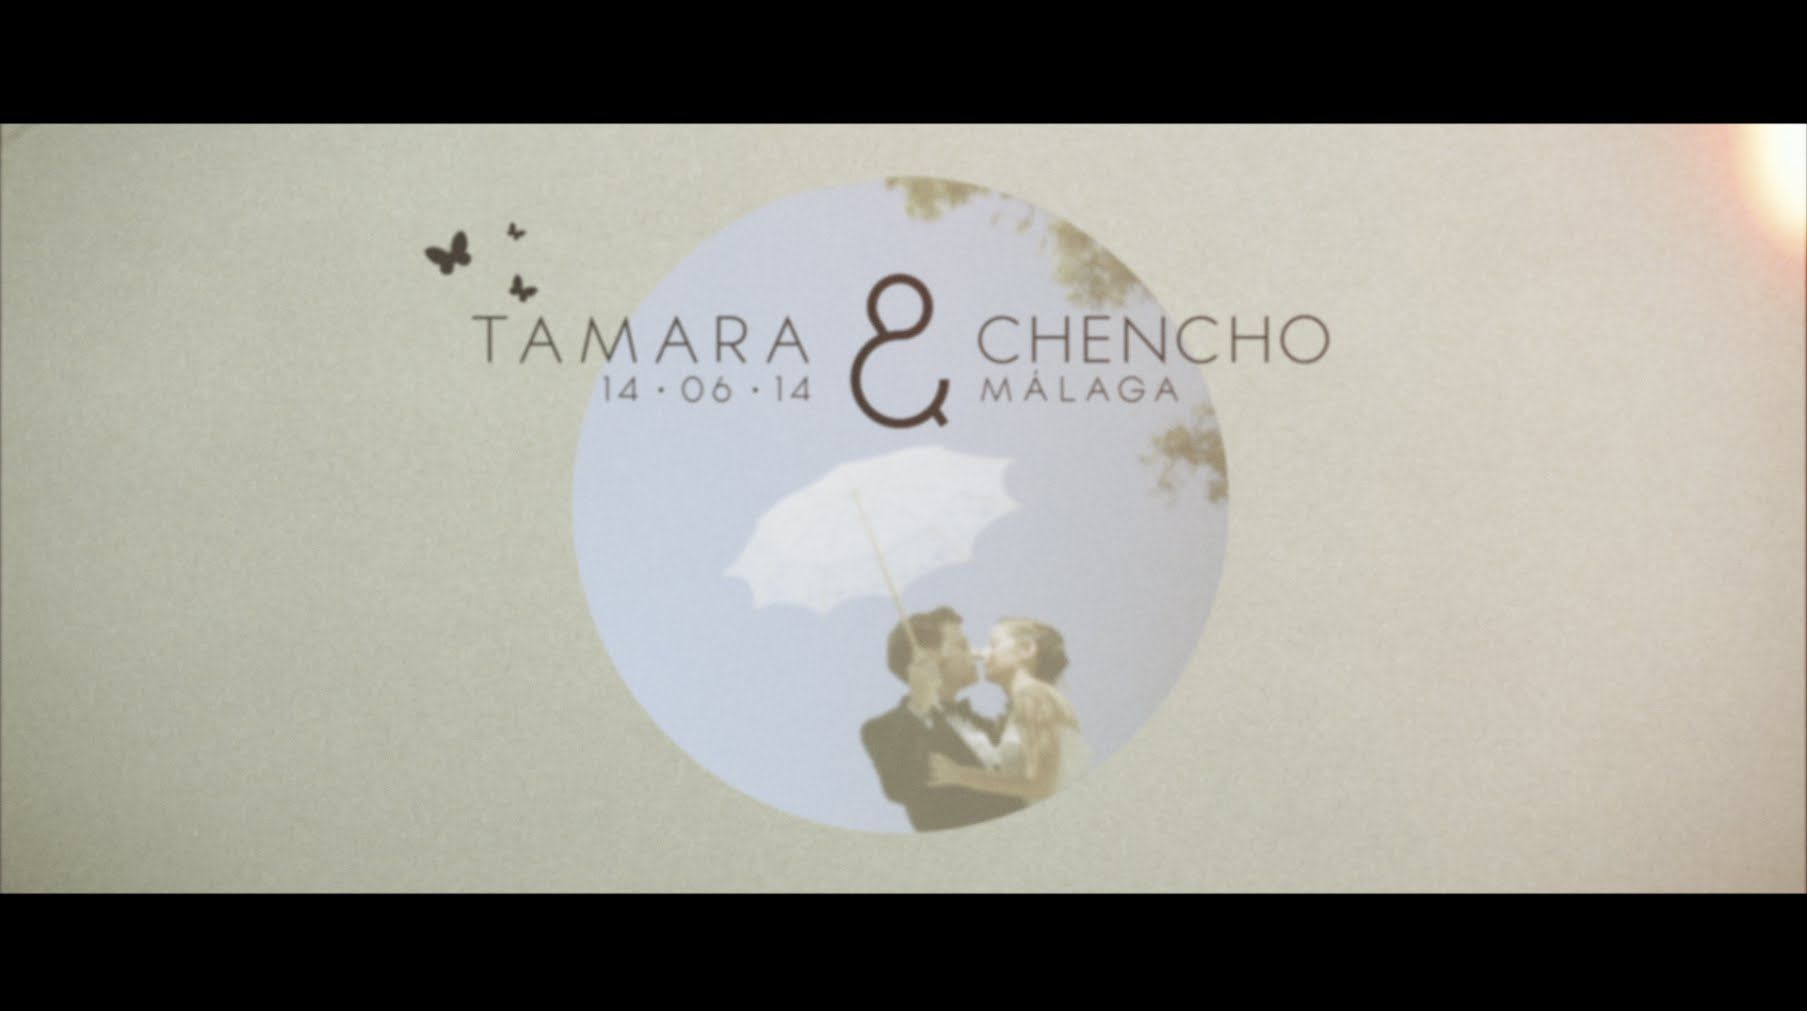 Tamara & Chencho: Highlights